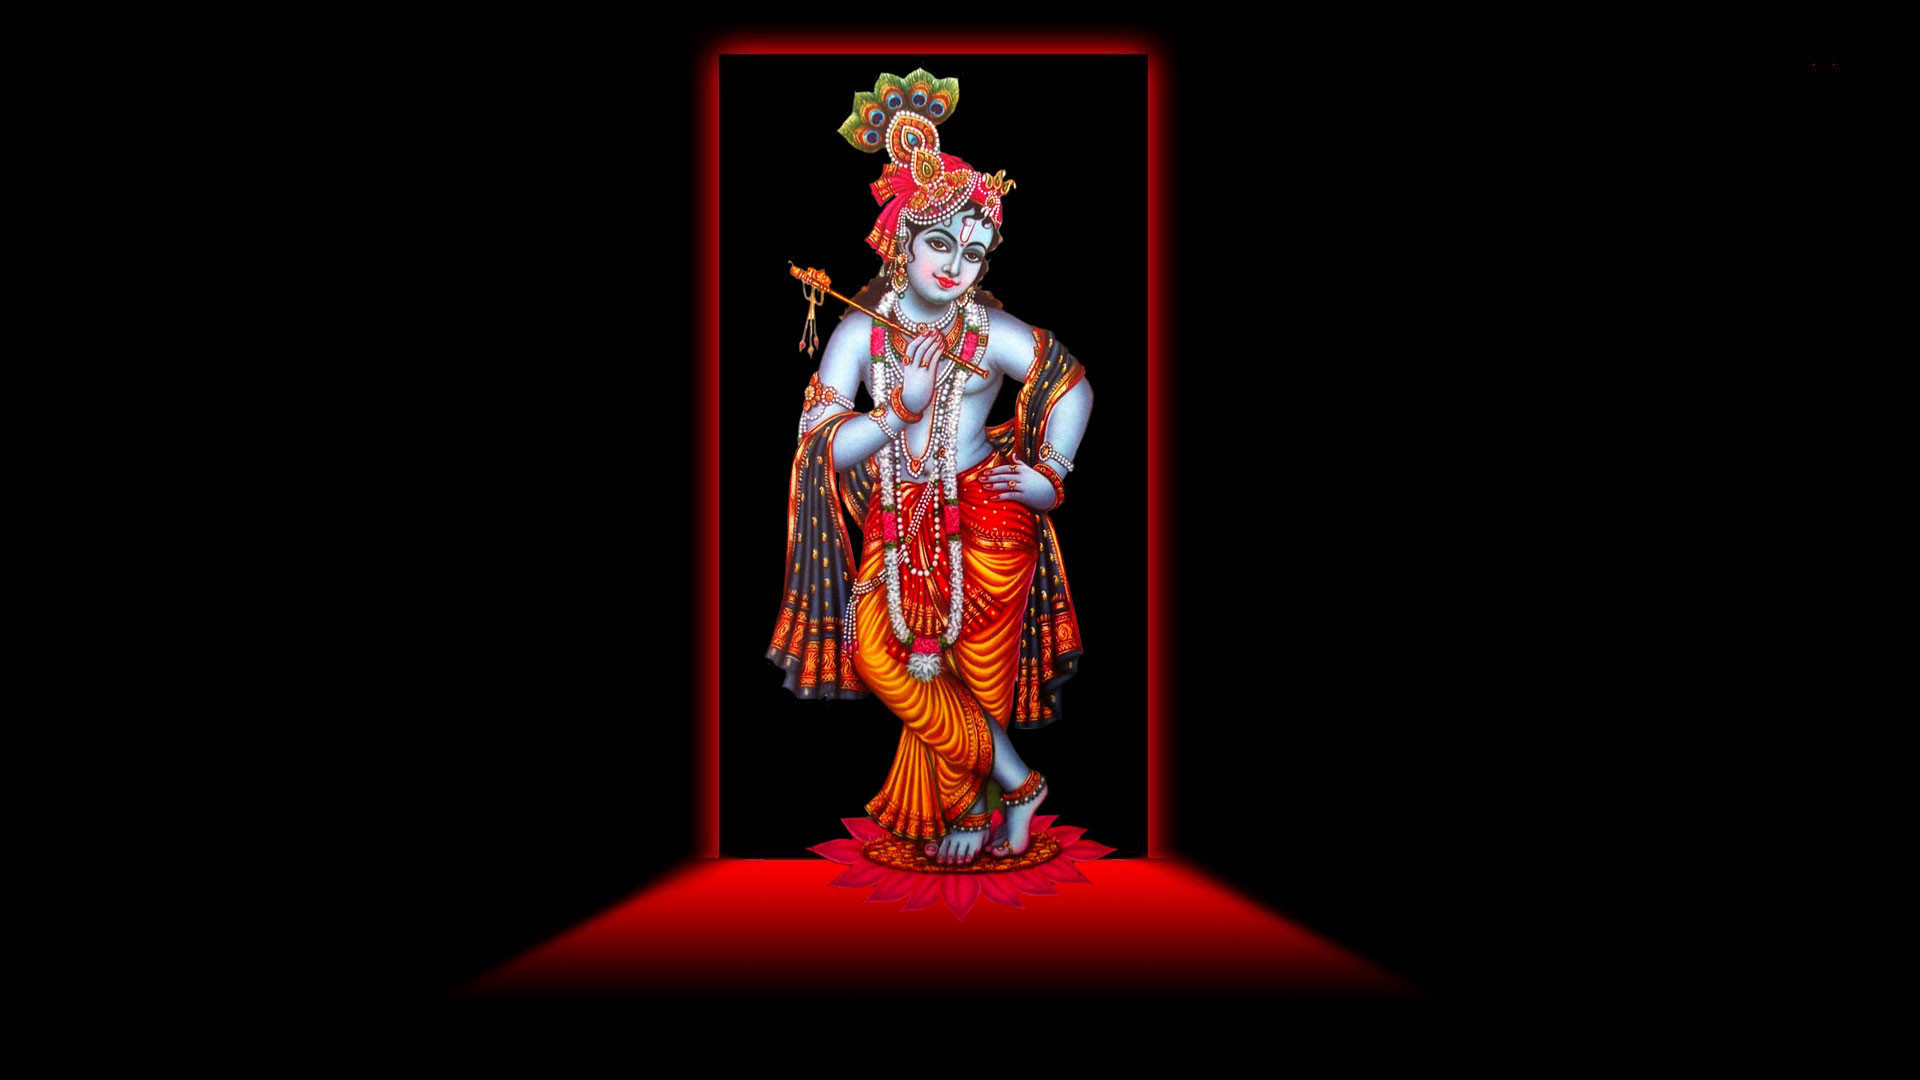 Lord krishna hd wallpapers for iphone24